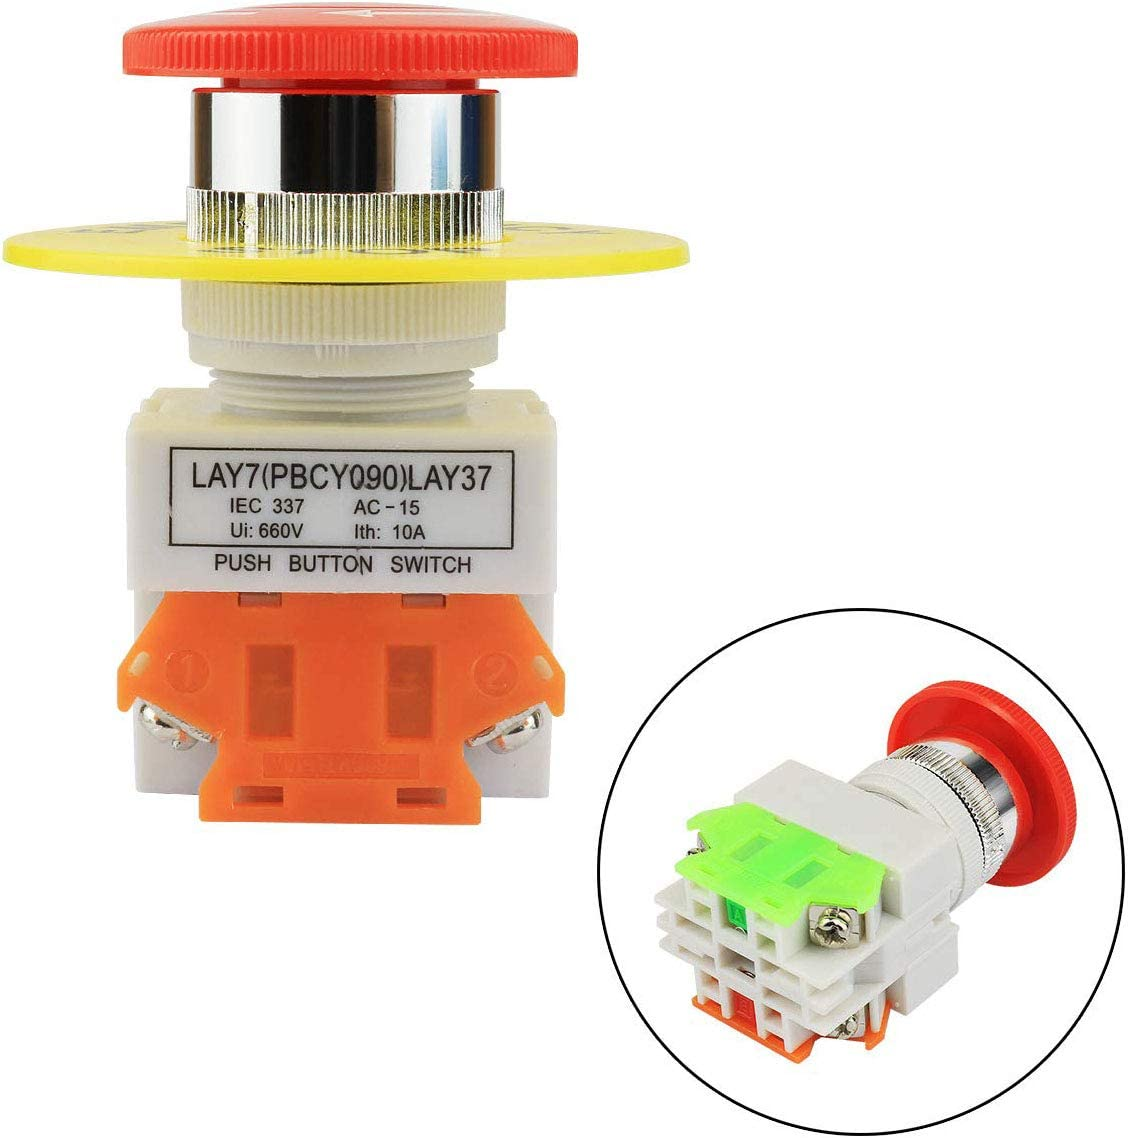 ToToT 2pcs Emergency Stop Push Button Switch AC 660V 10A Red Mushroom Cap 1NO 1NC DPST Switch Equipment Lift Elevator Latching Self Lock 22mm Mounting Hole LAY37-11ZS